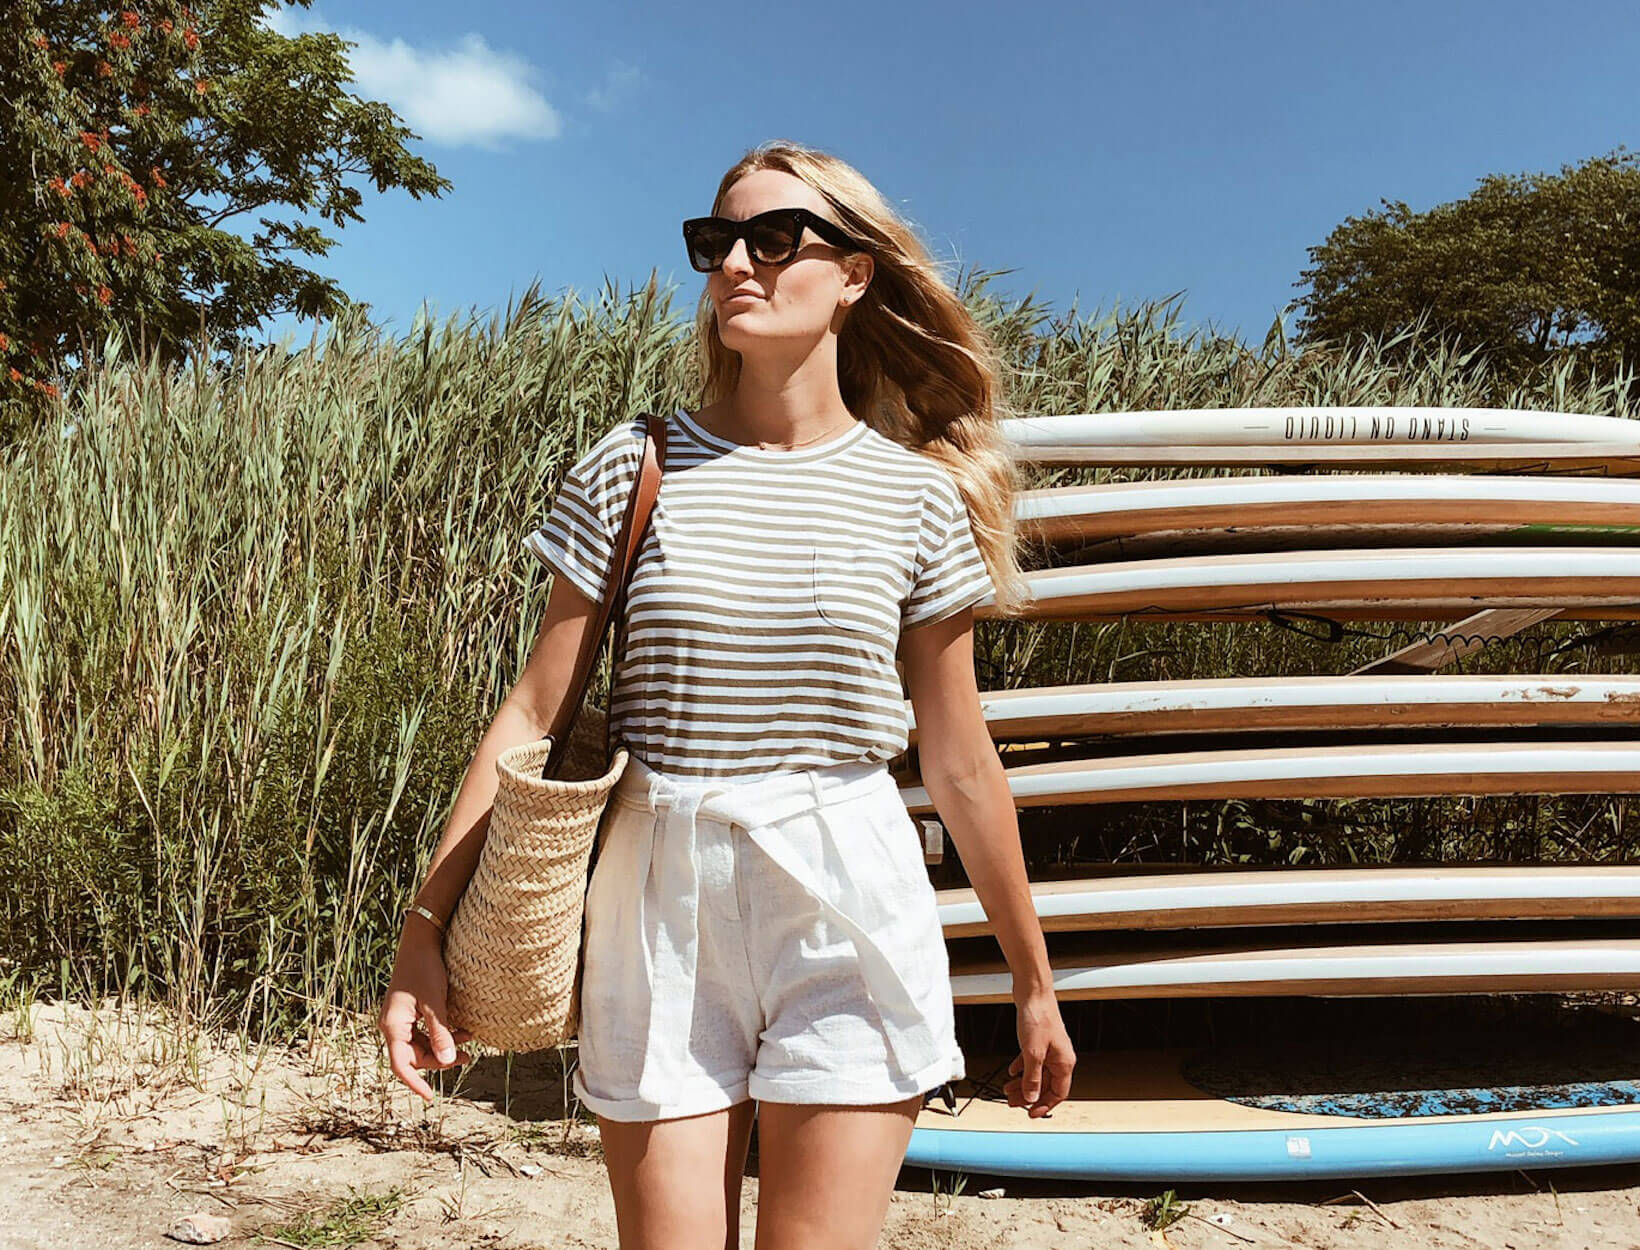 woman successful  summertime  labour  time  outfit